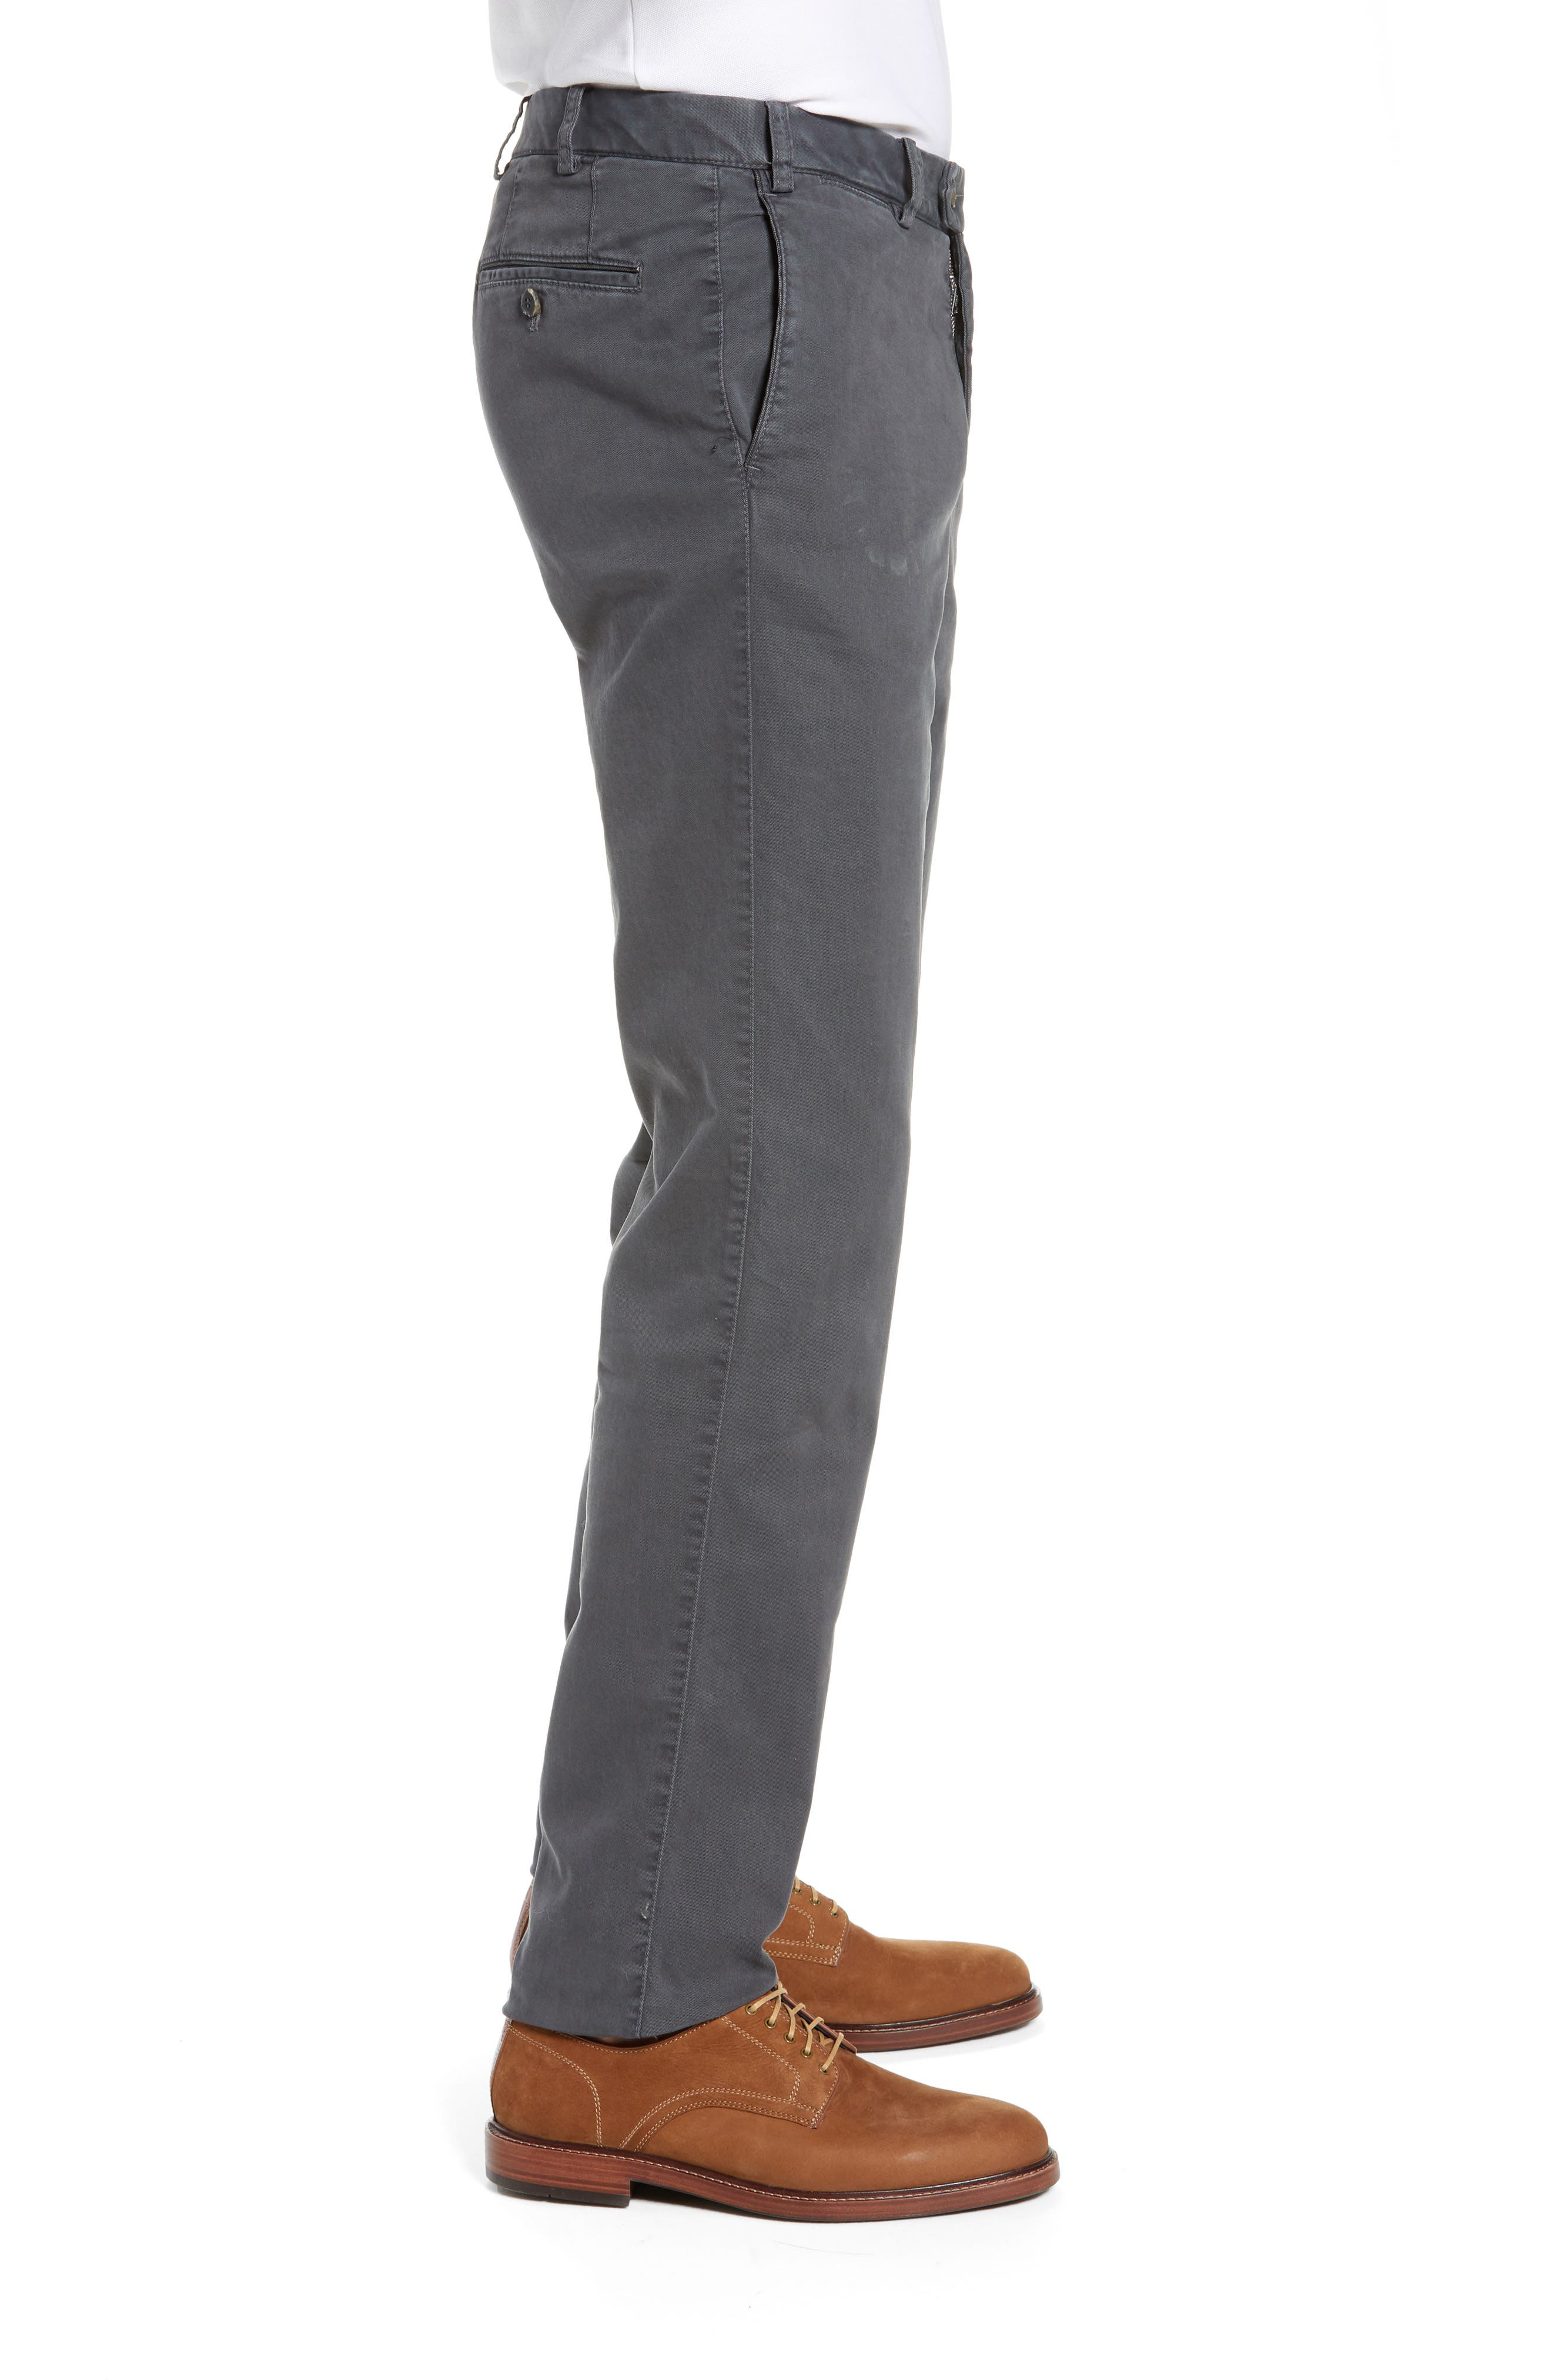 Pero Trim Fit Flat Front Chino Trousers,                             Alternate thumbnail 3, color,                             GREY